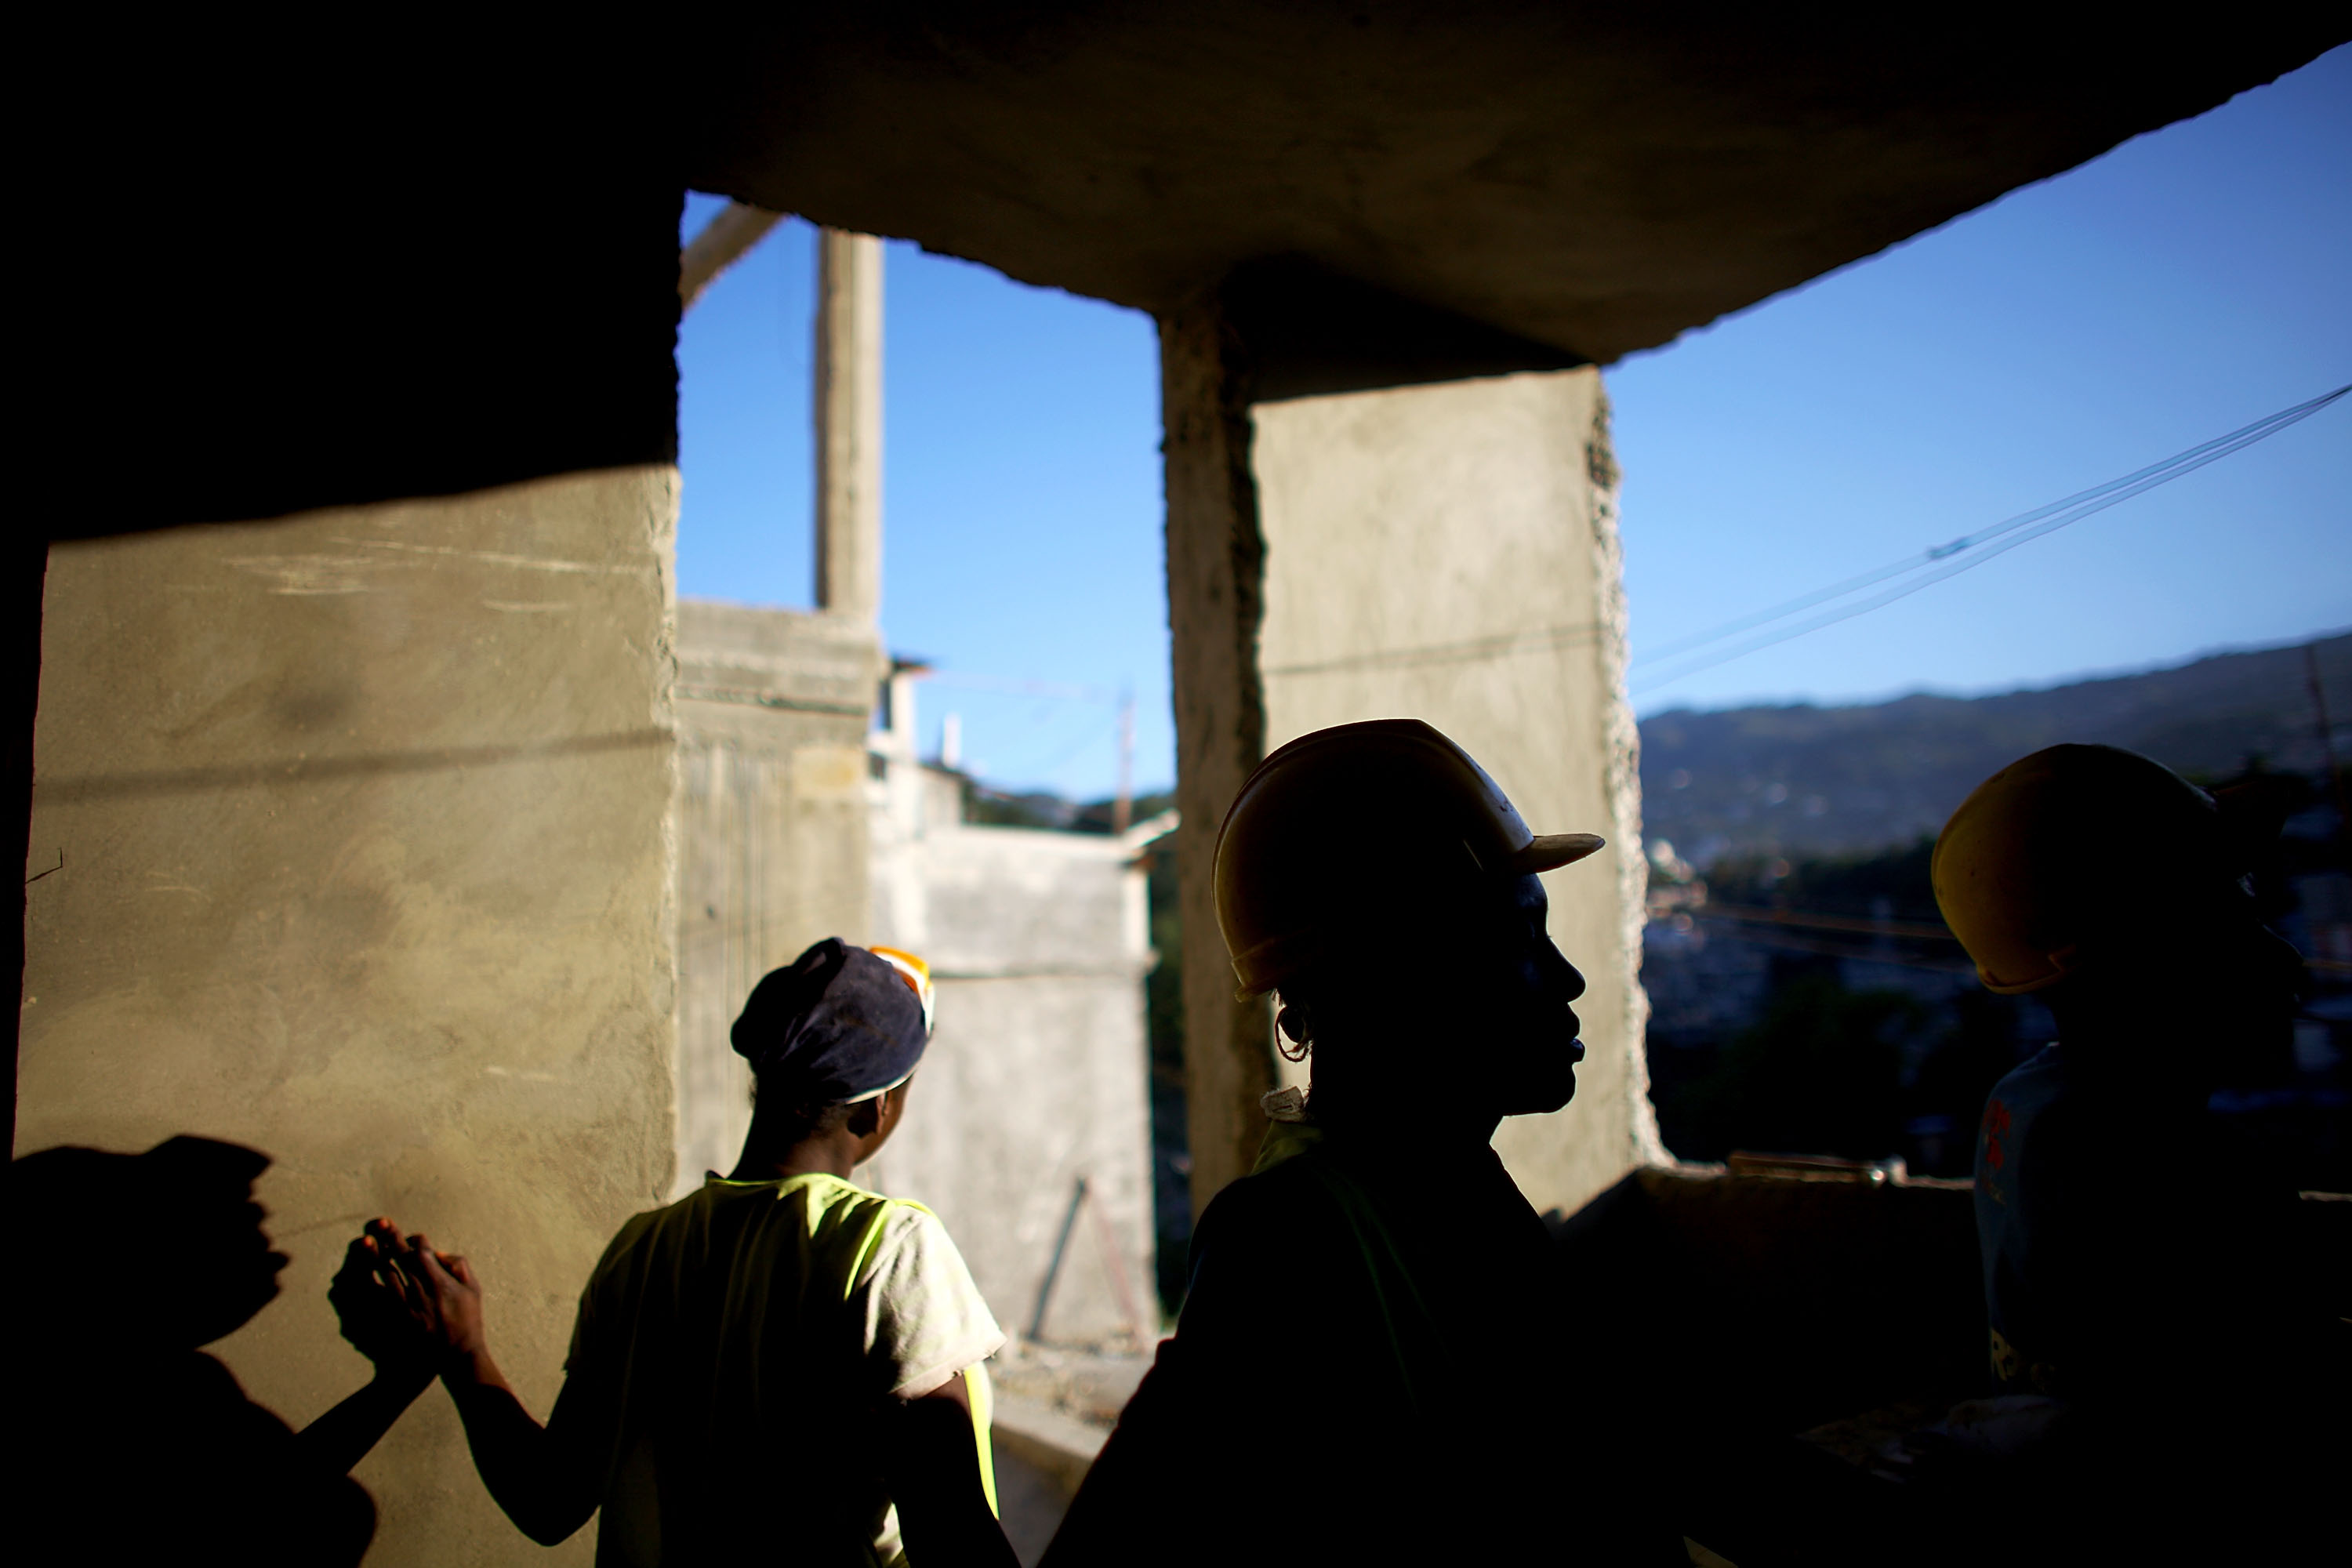 Workers finish the cement walls on a multilevel building in the hills above Port-au-Prince near Petionville. They plan to finish the 18-unit housing facility in 2013.